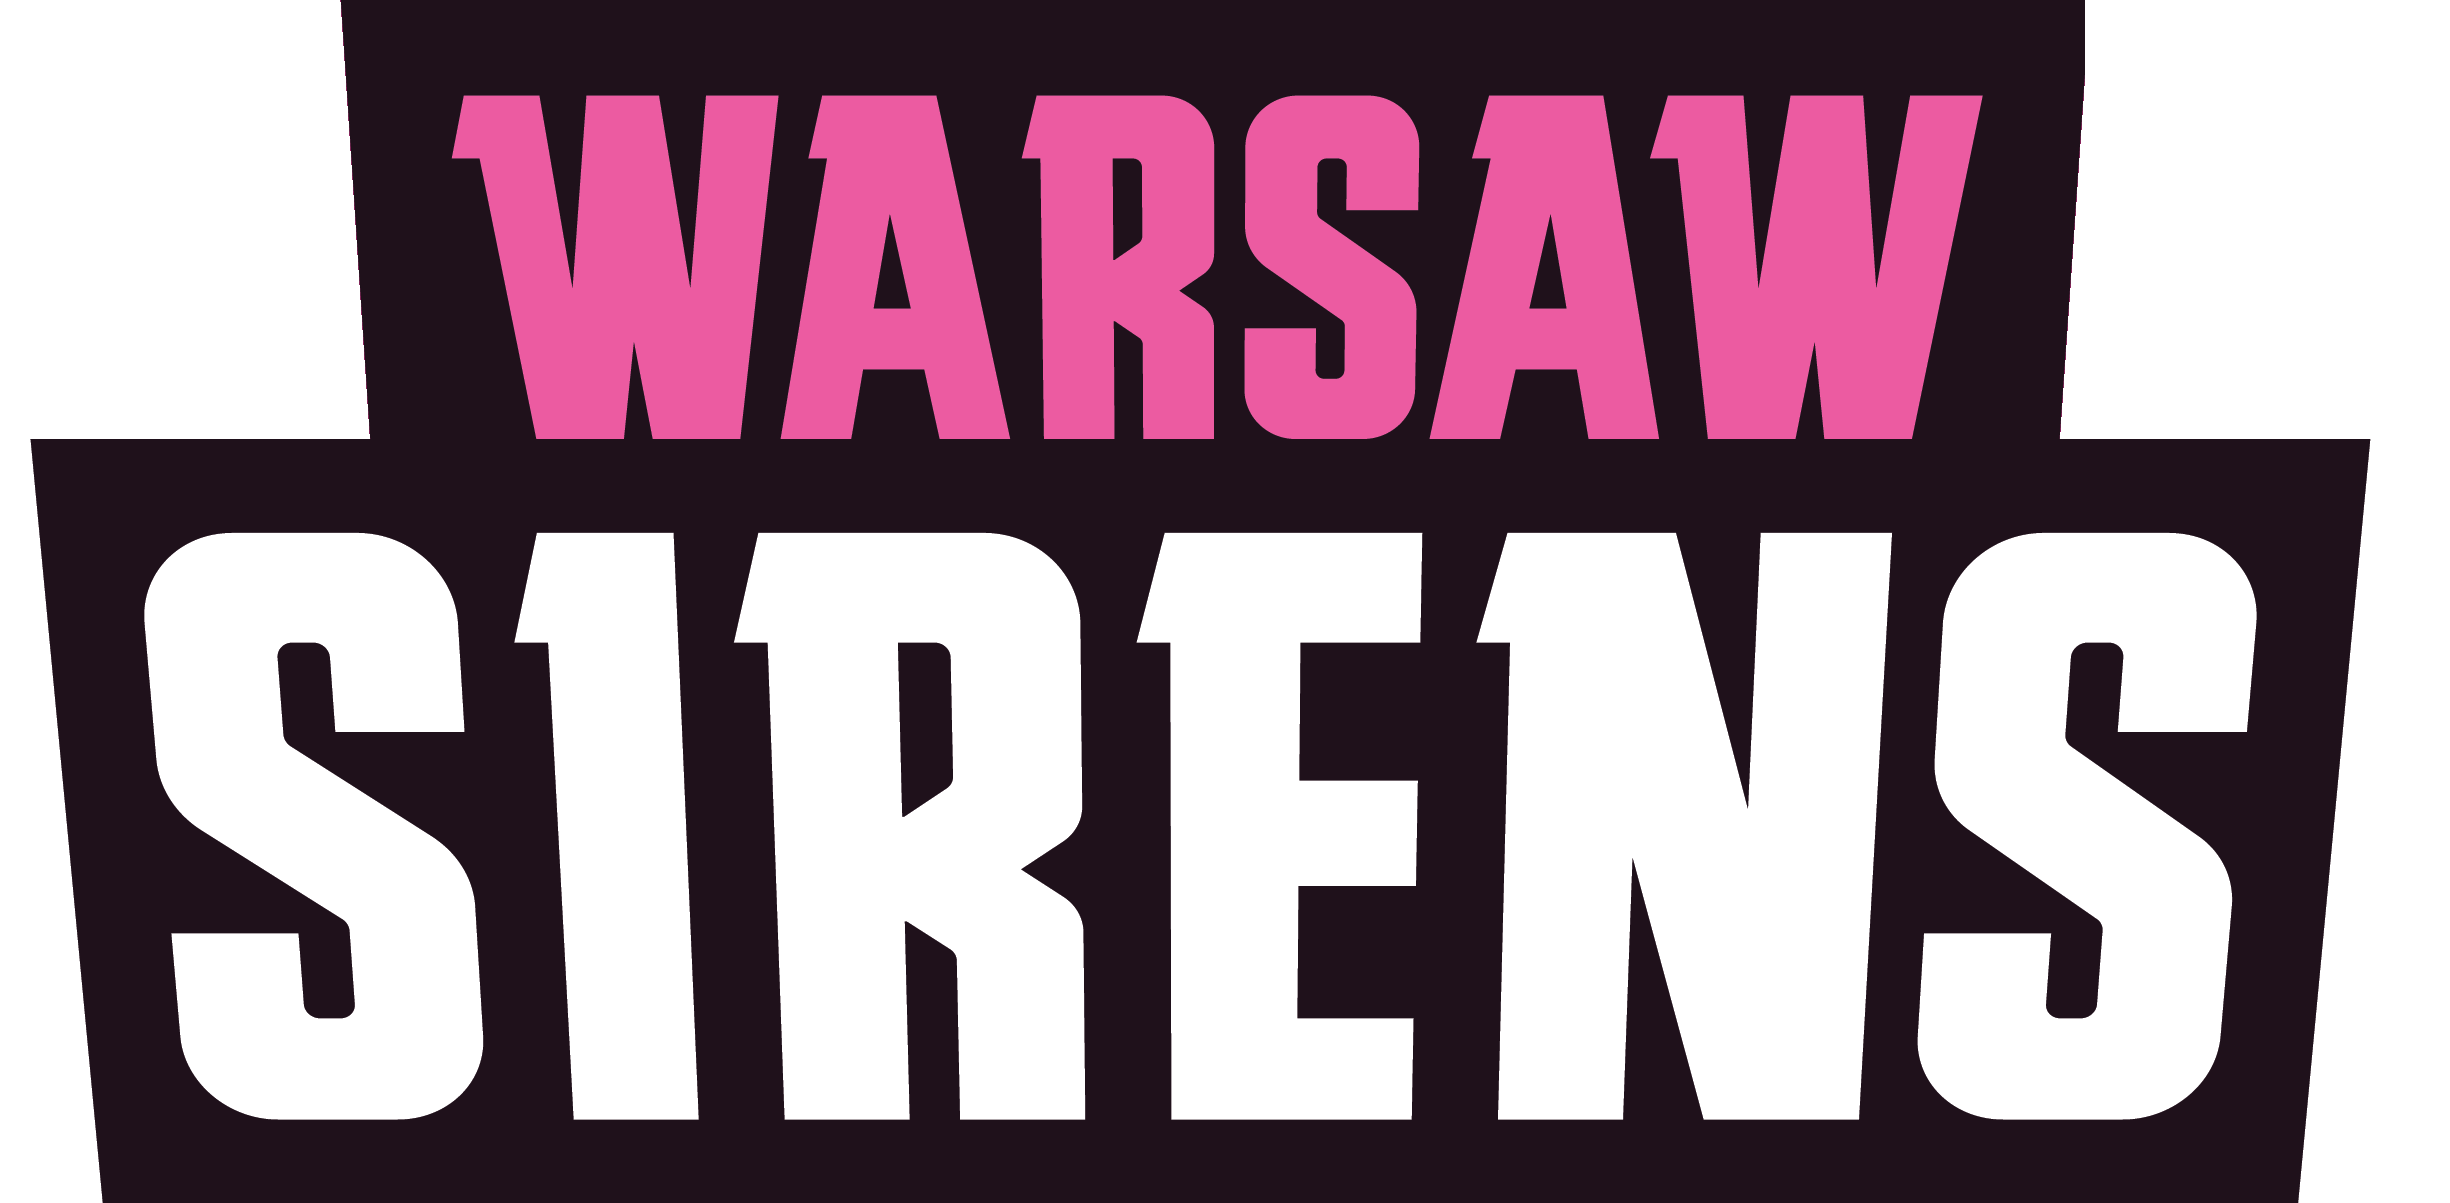 Warsaw Sirens